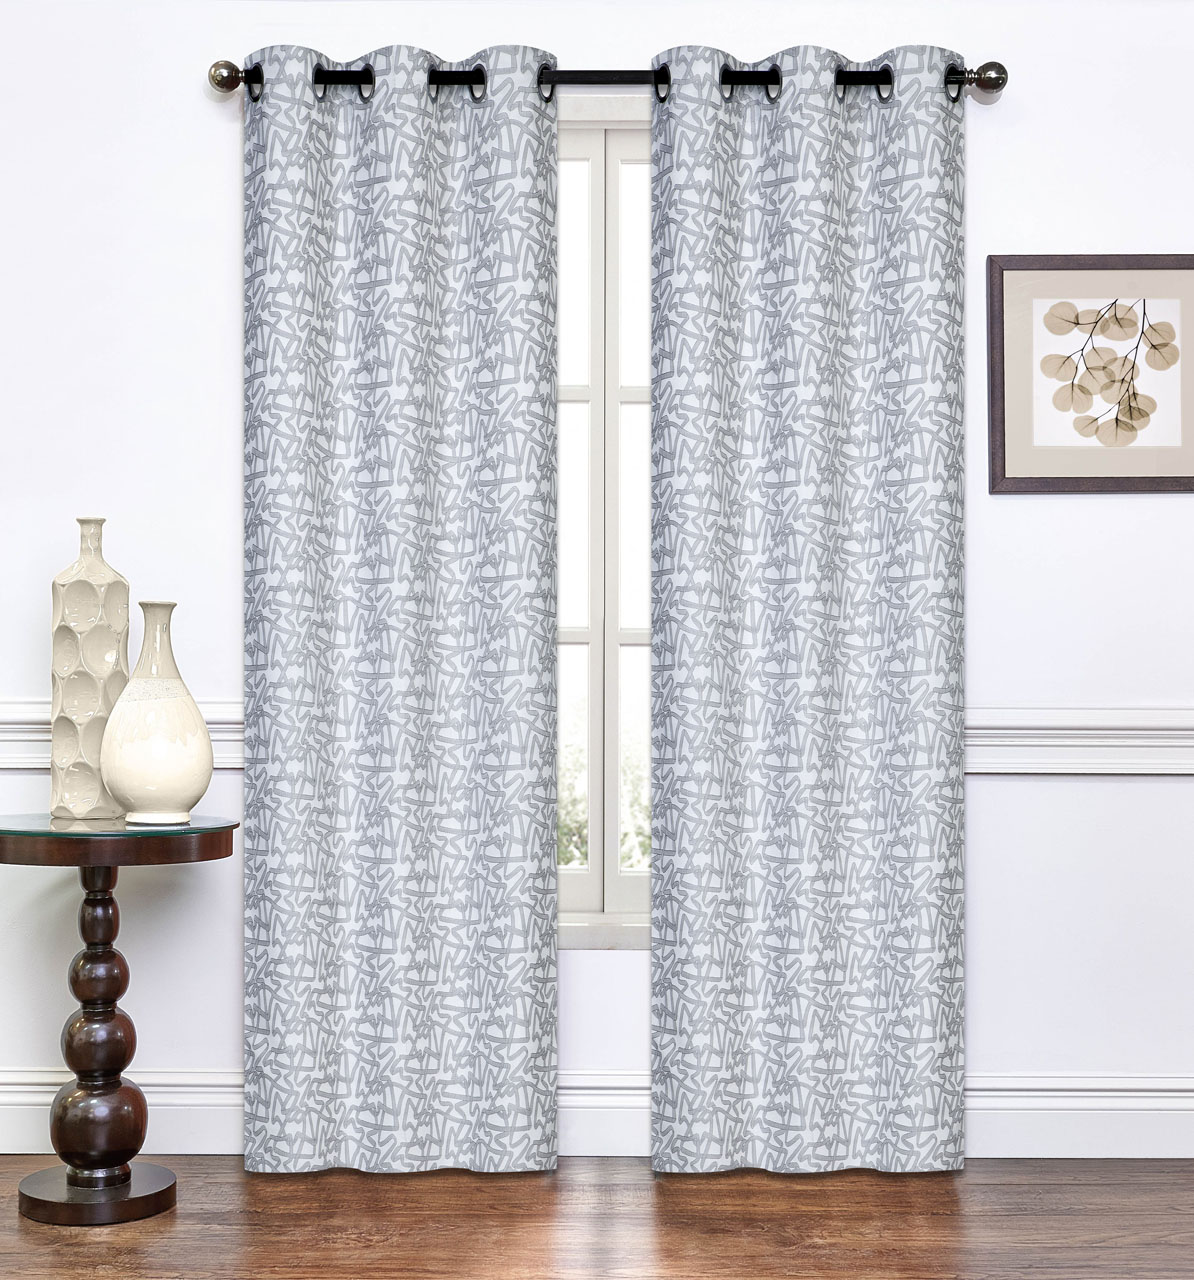 Pair Of Annette Light Gray Window Curtain Panels W